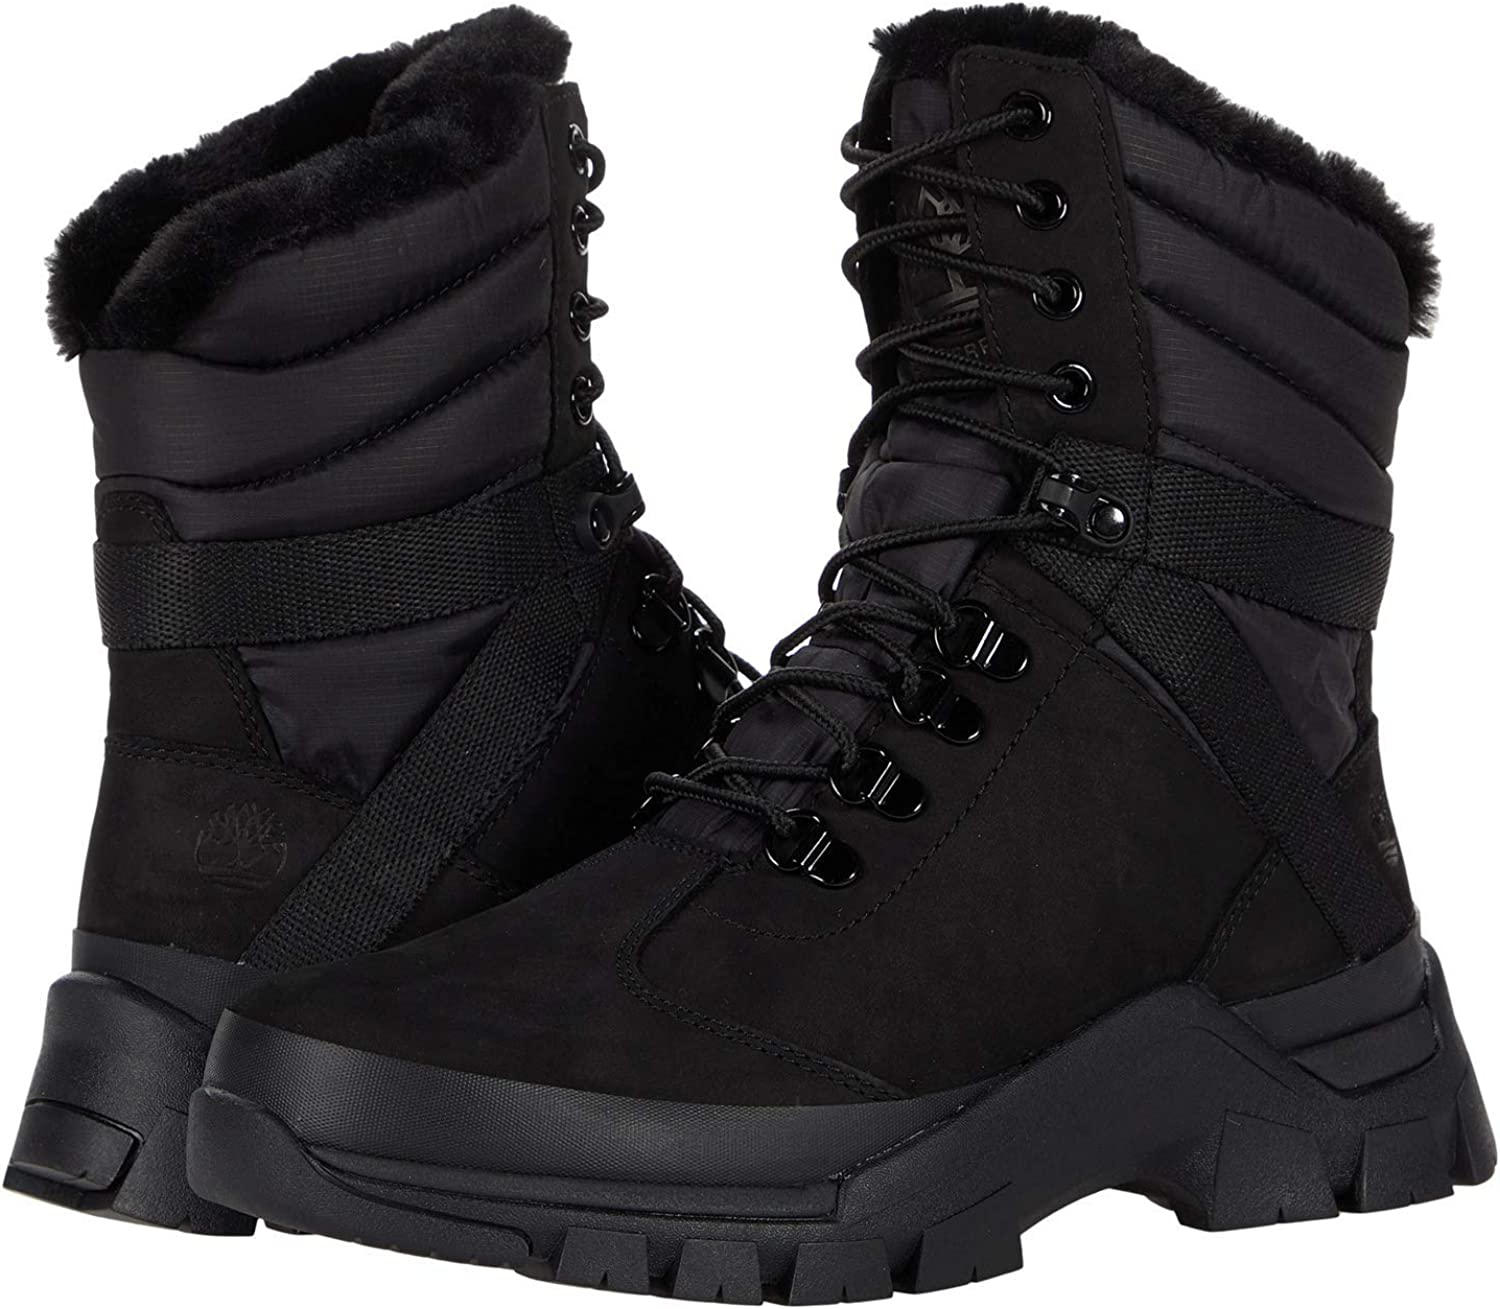 Timberland Jenness Falls Waterproof Leather and Fabric Ranking TOP1 Insulated Max 85% OFF